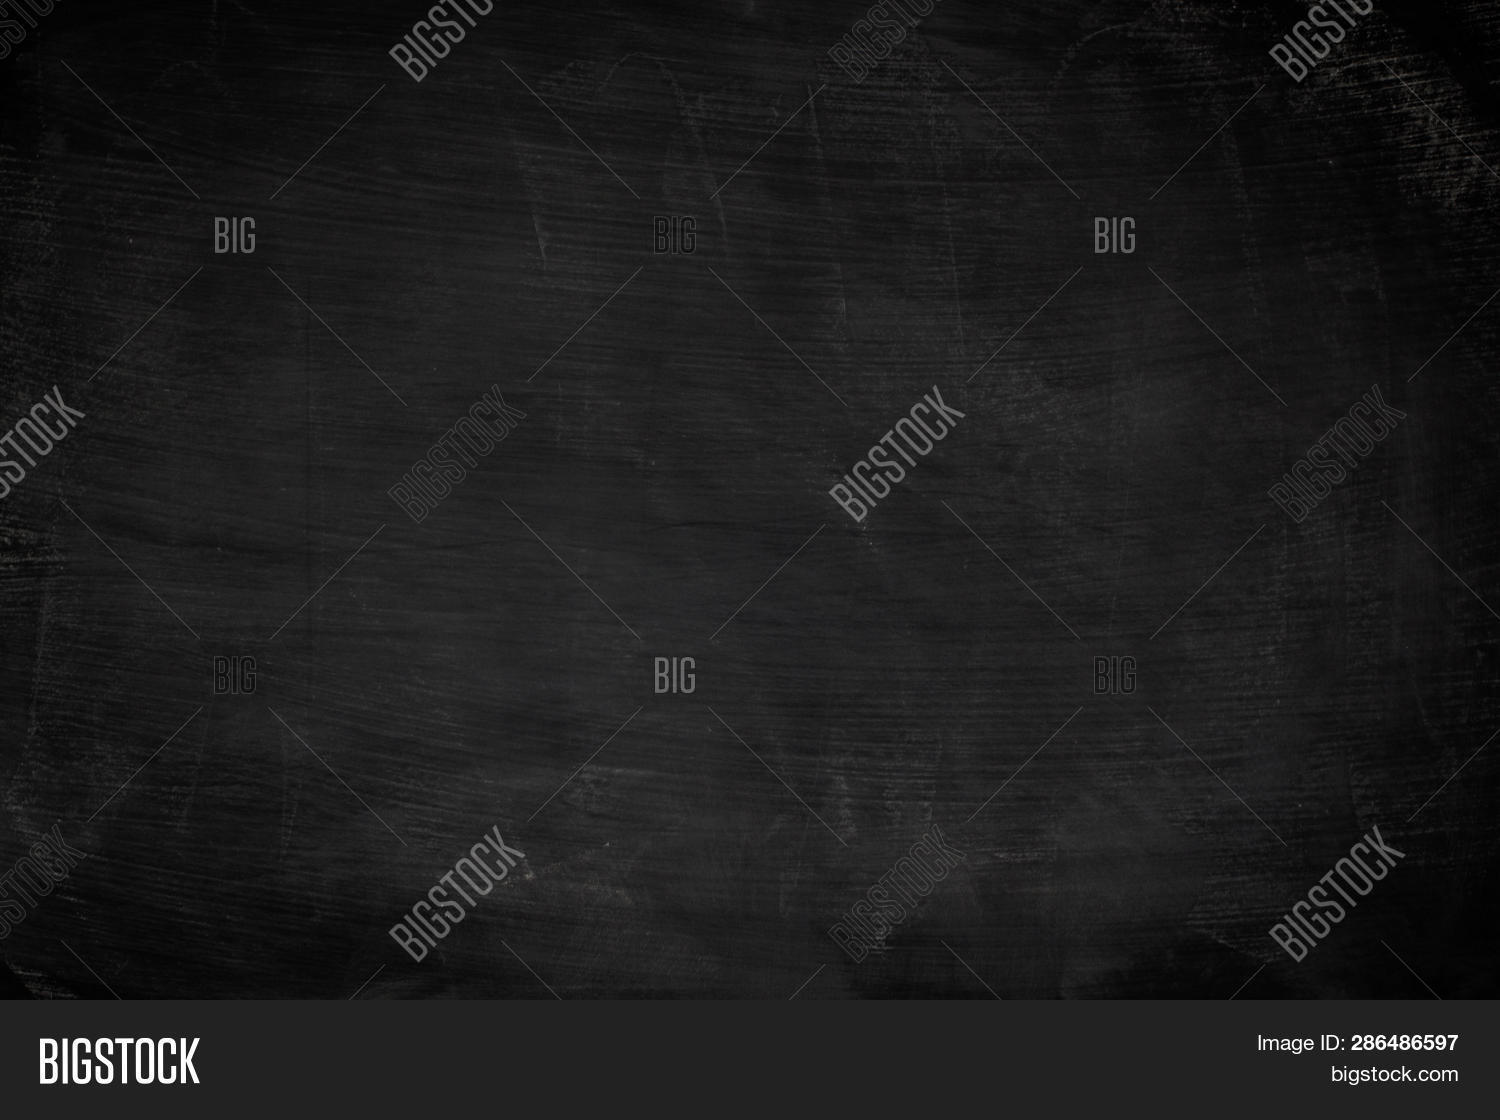 Black Grunge Dirty Texture With Copyspace. Abstract Chalk Rubbed Out On Blackboard Or Chalkboard Bac